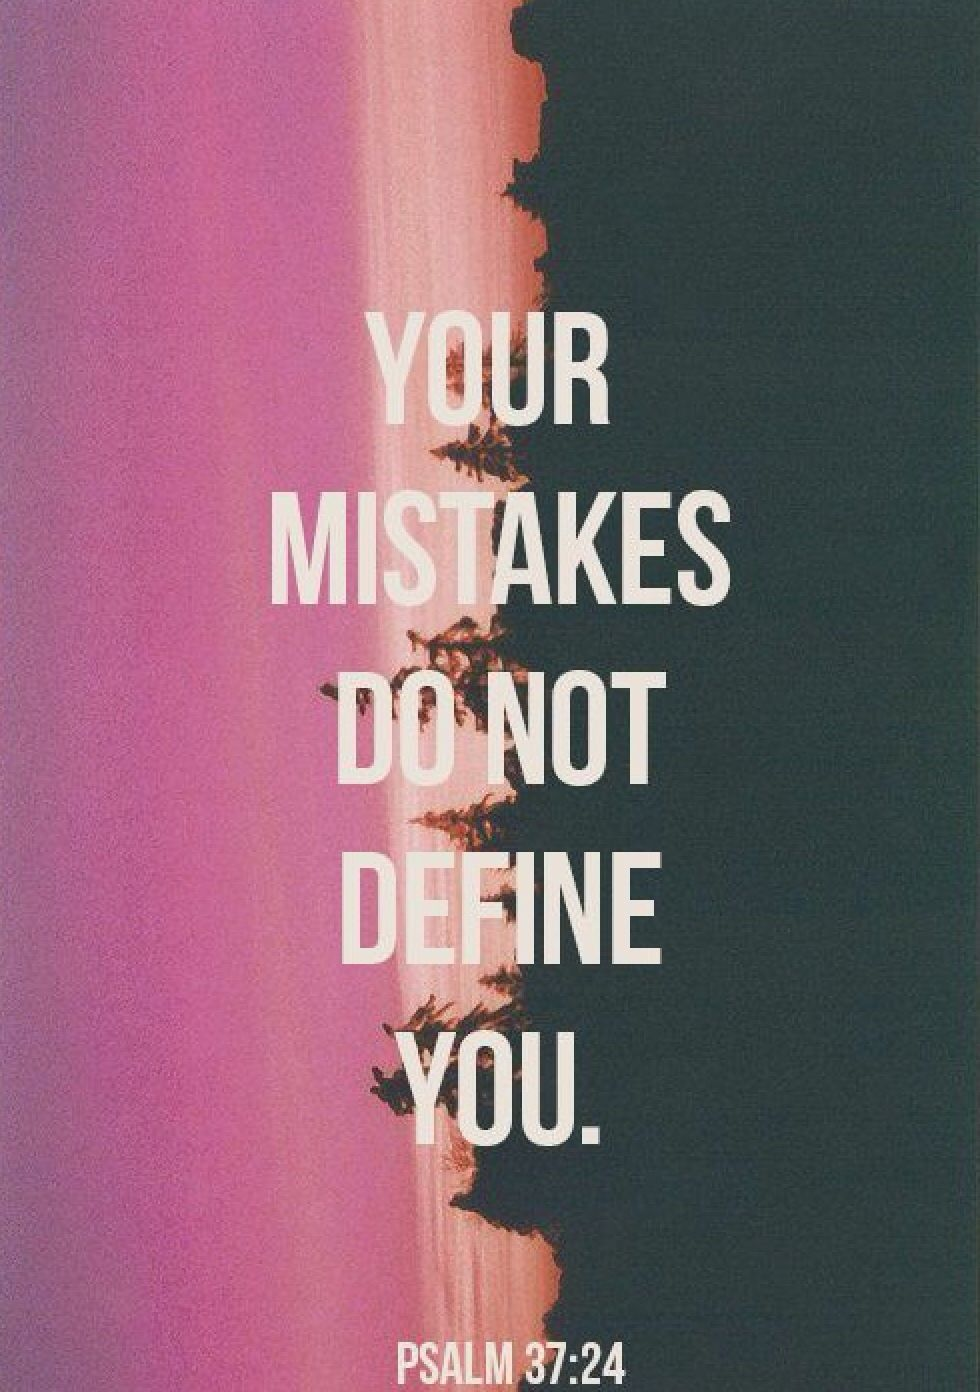 #quotes #life #thoughts #mistakes